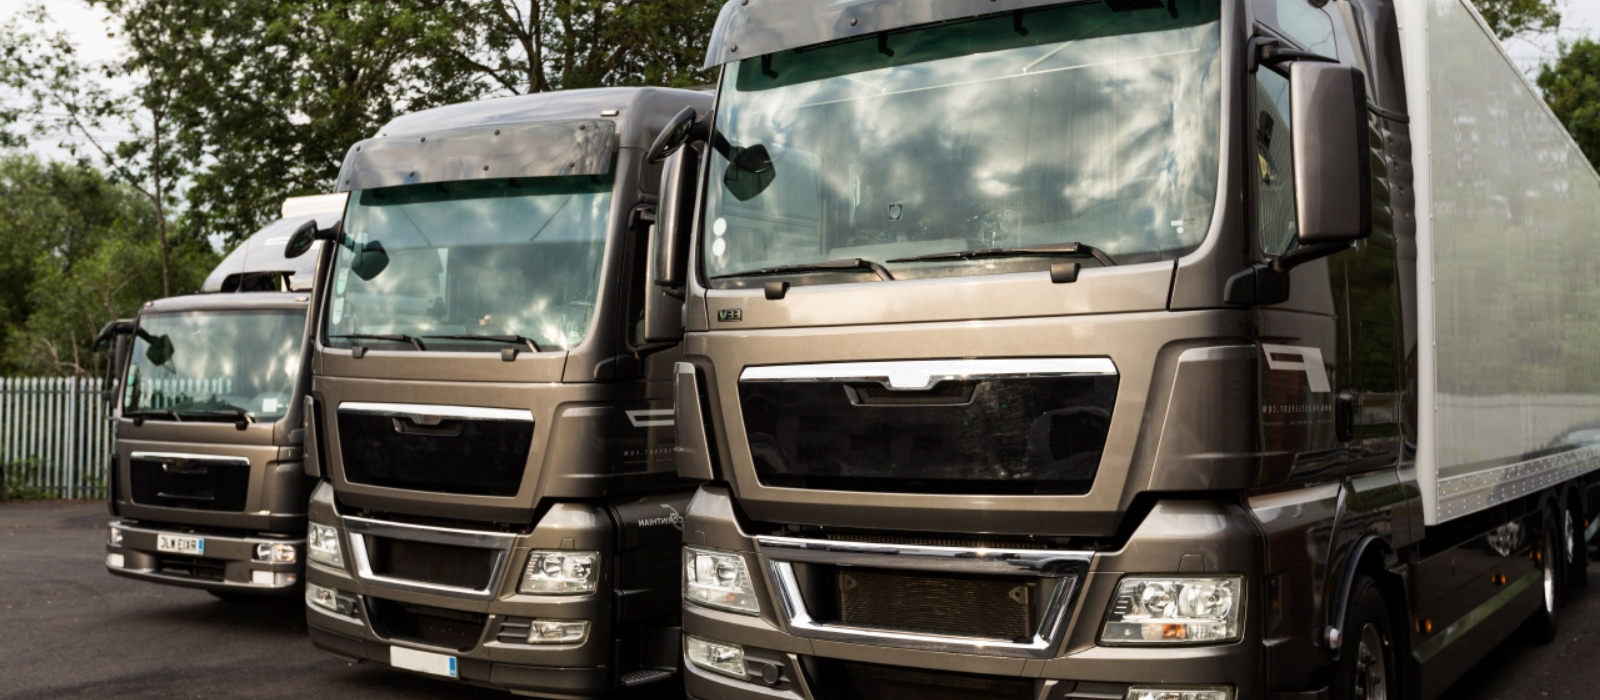 Used trucks and lorries for sale